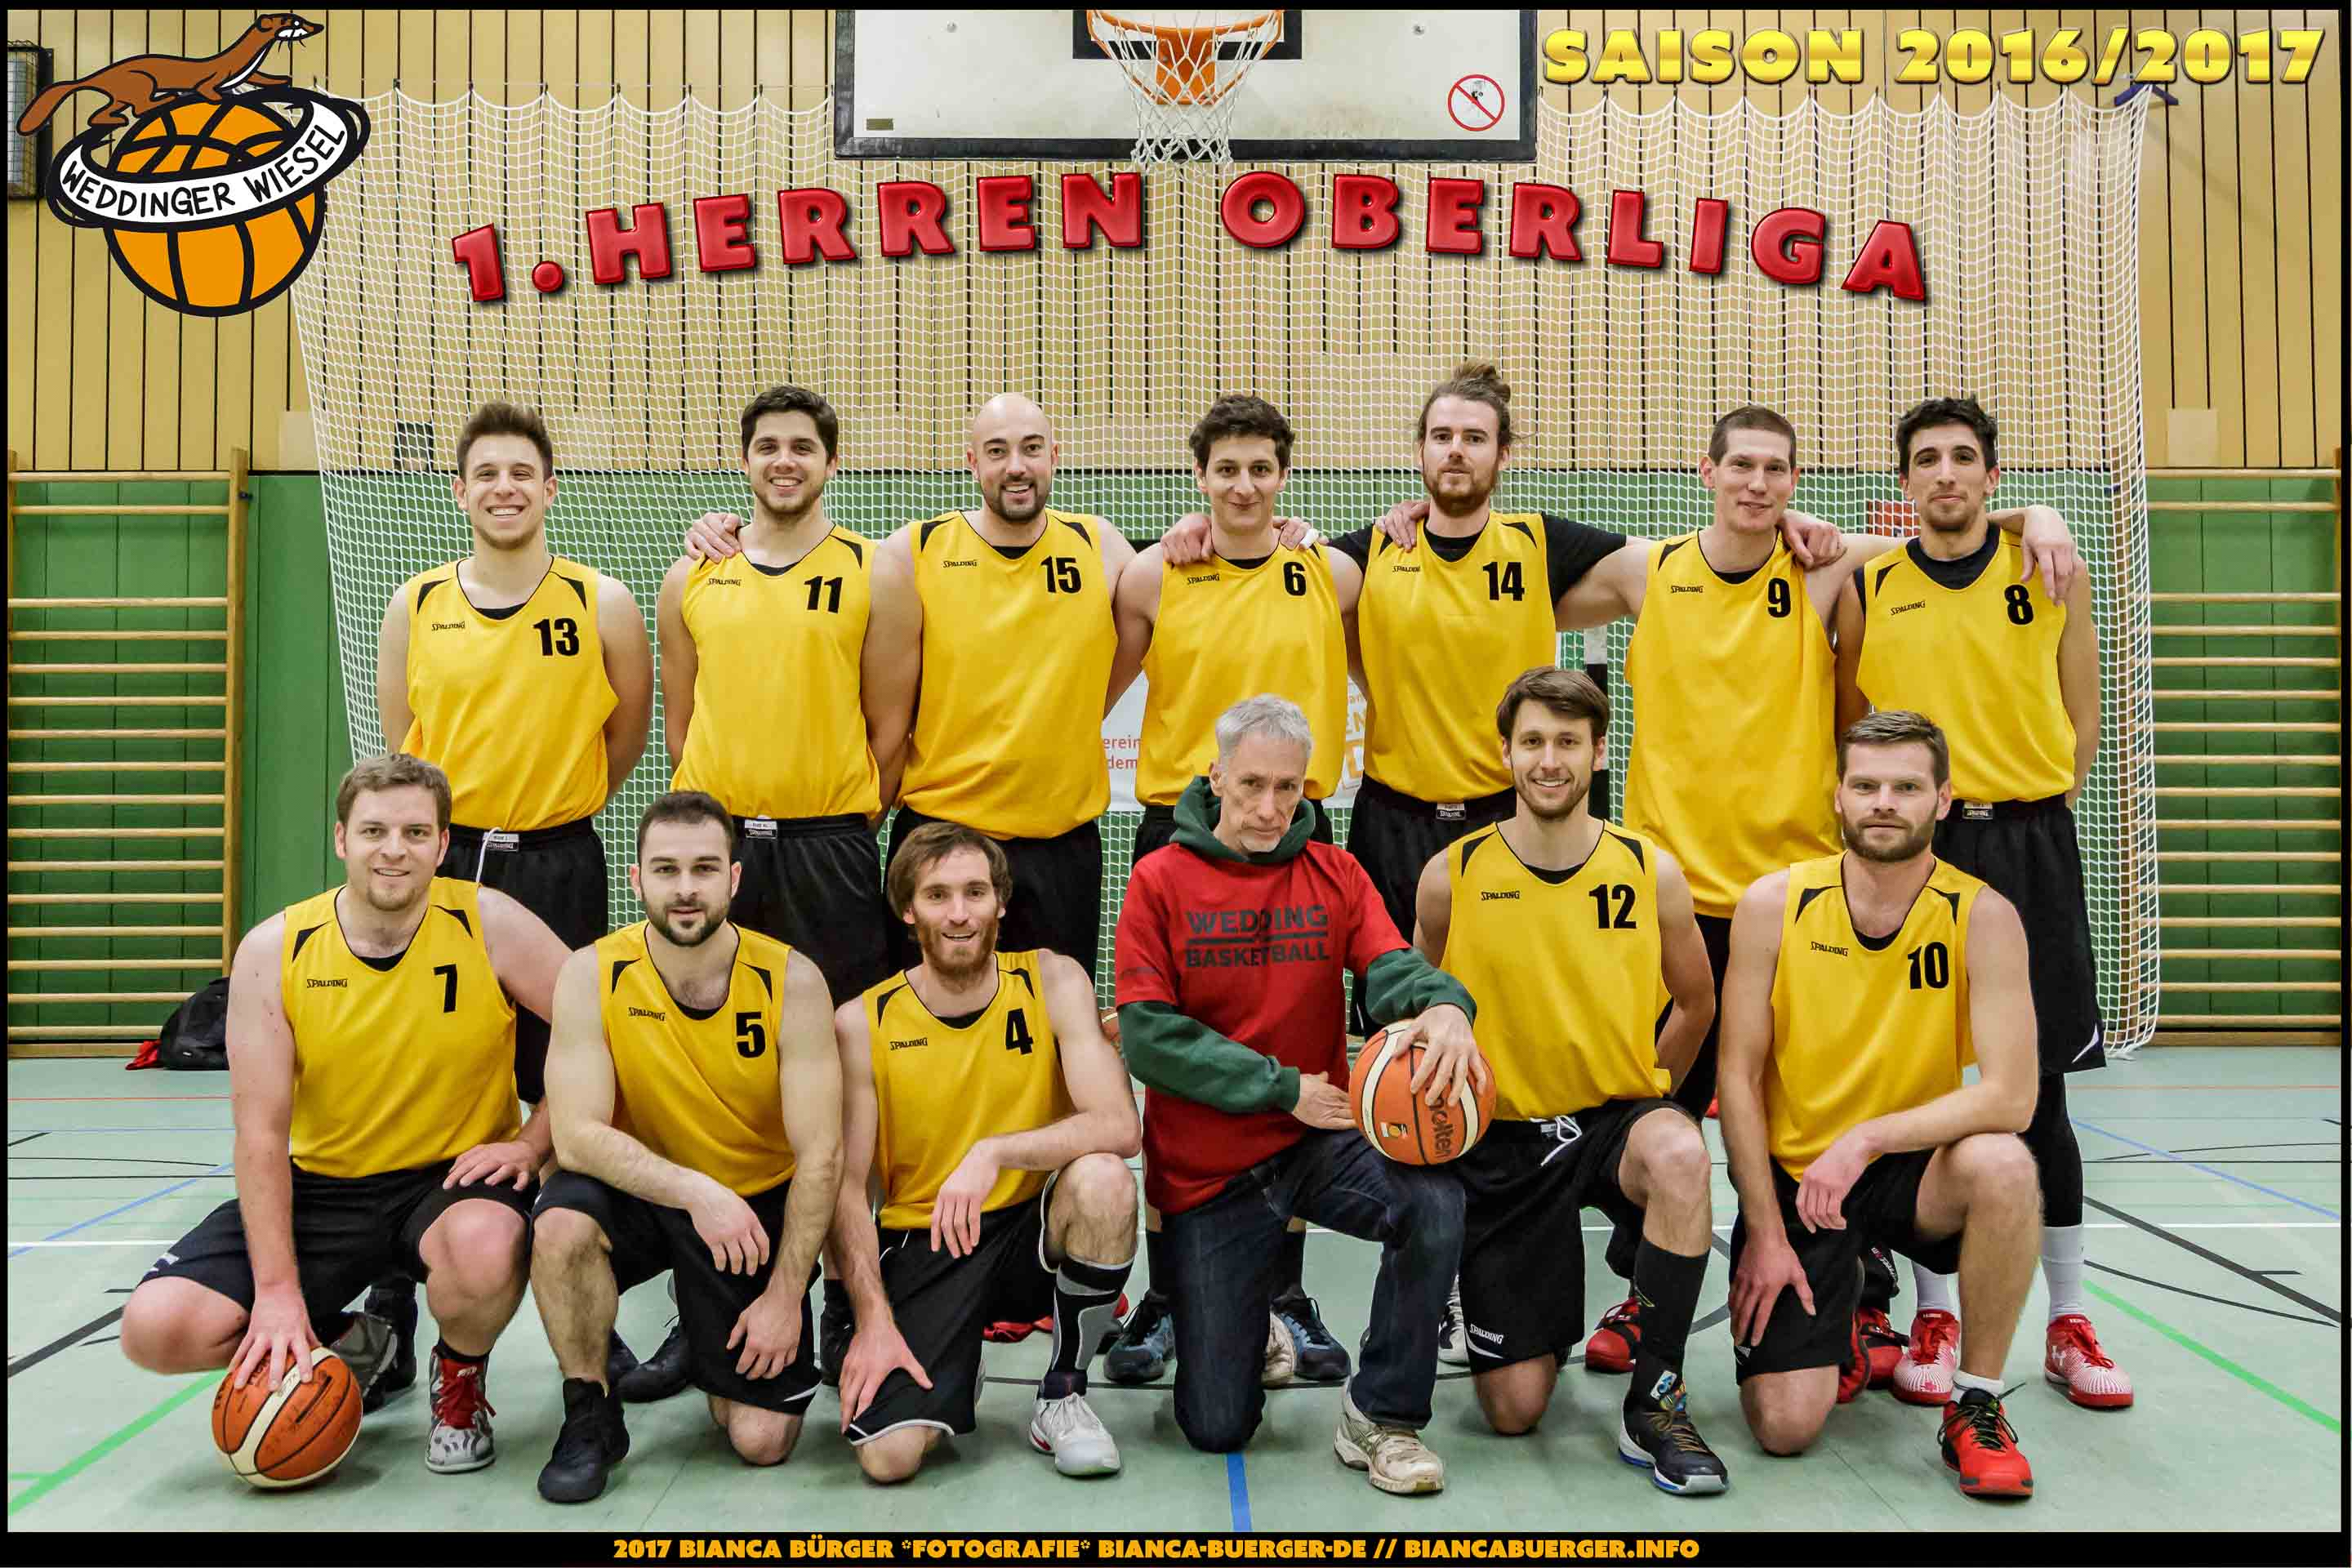 Team 1. Herren Weddinger Wiesel - Saison 2016-2017